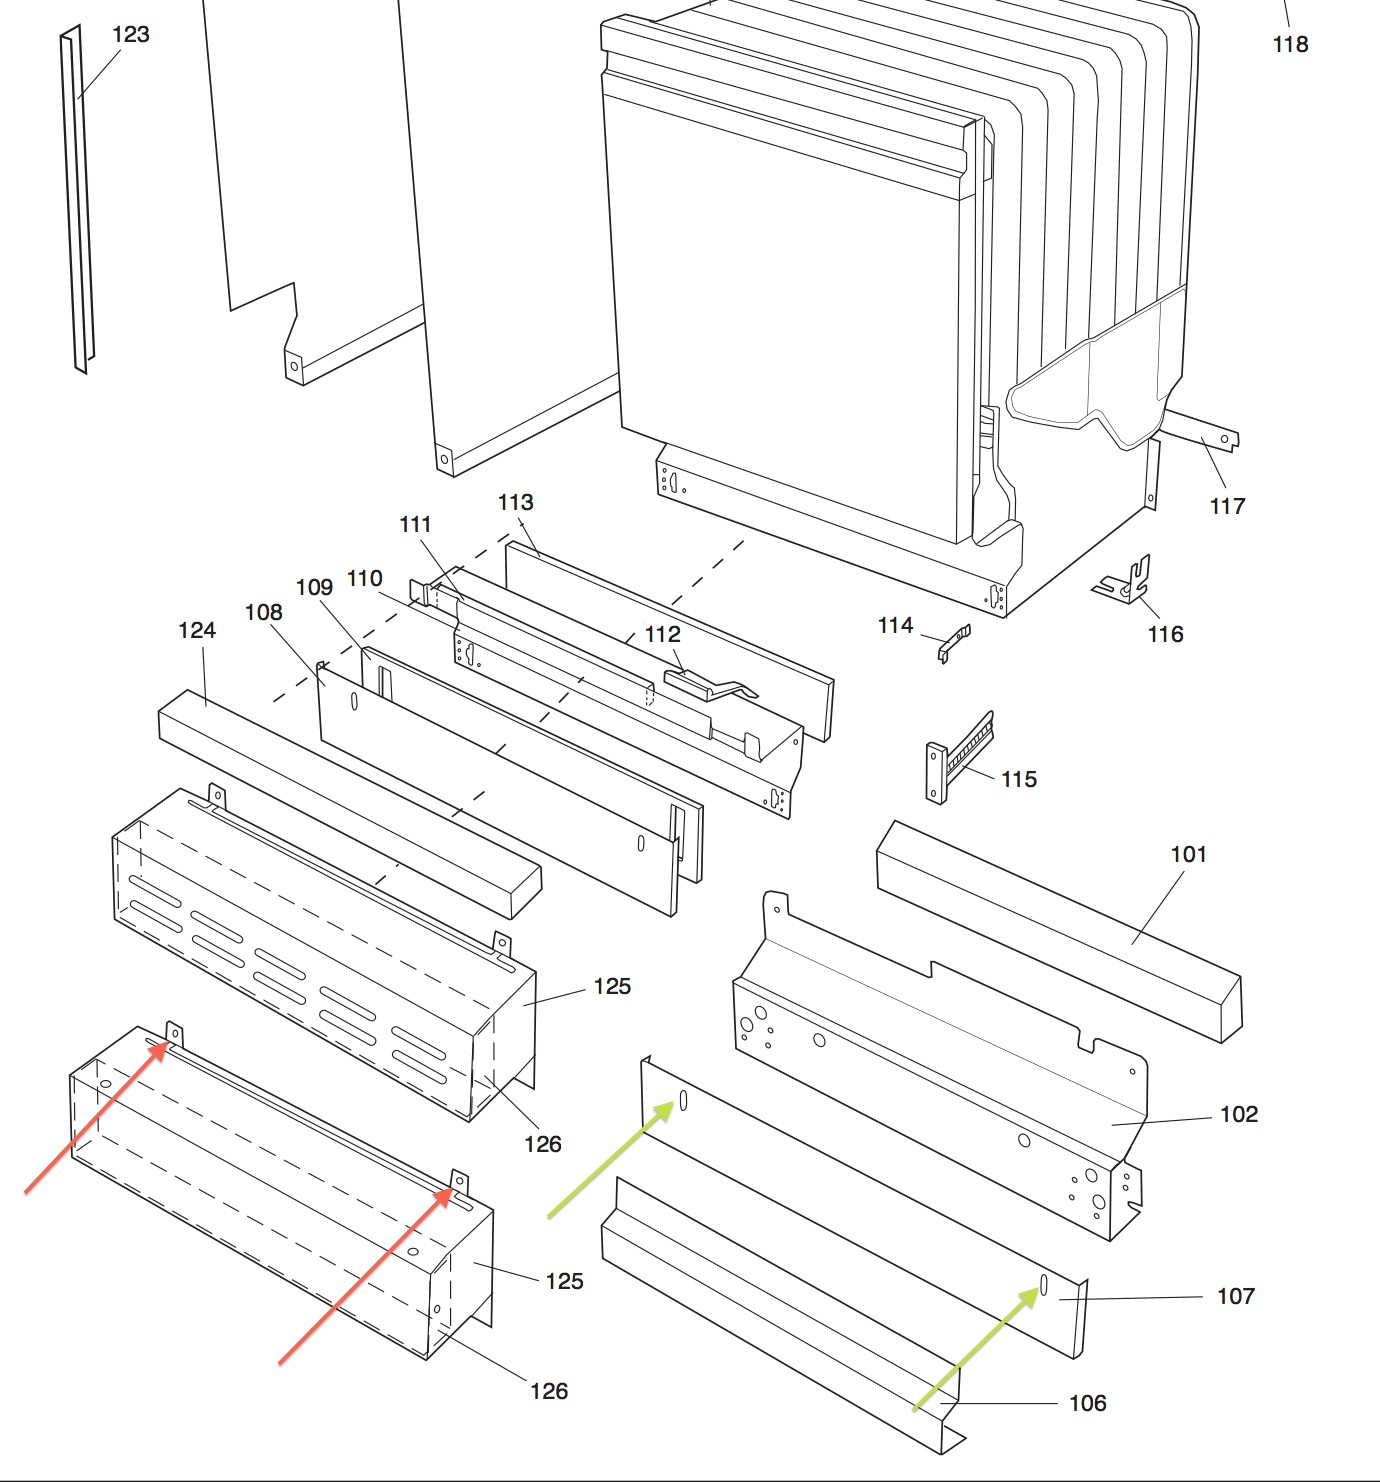 Asko Dishwasher Dbi675 Parts Diagram How Do We Access the Base Pan On or asko Dishwasher Model D5122xxls that is Only Five Years Old Of Asko Dishwasher Dbi675 Parts Diagram